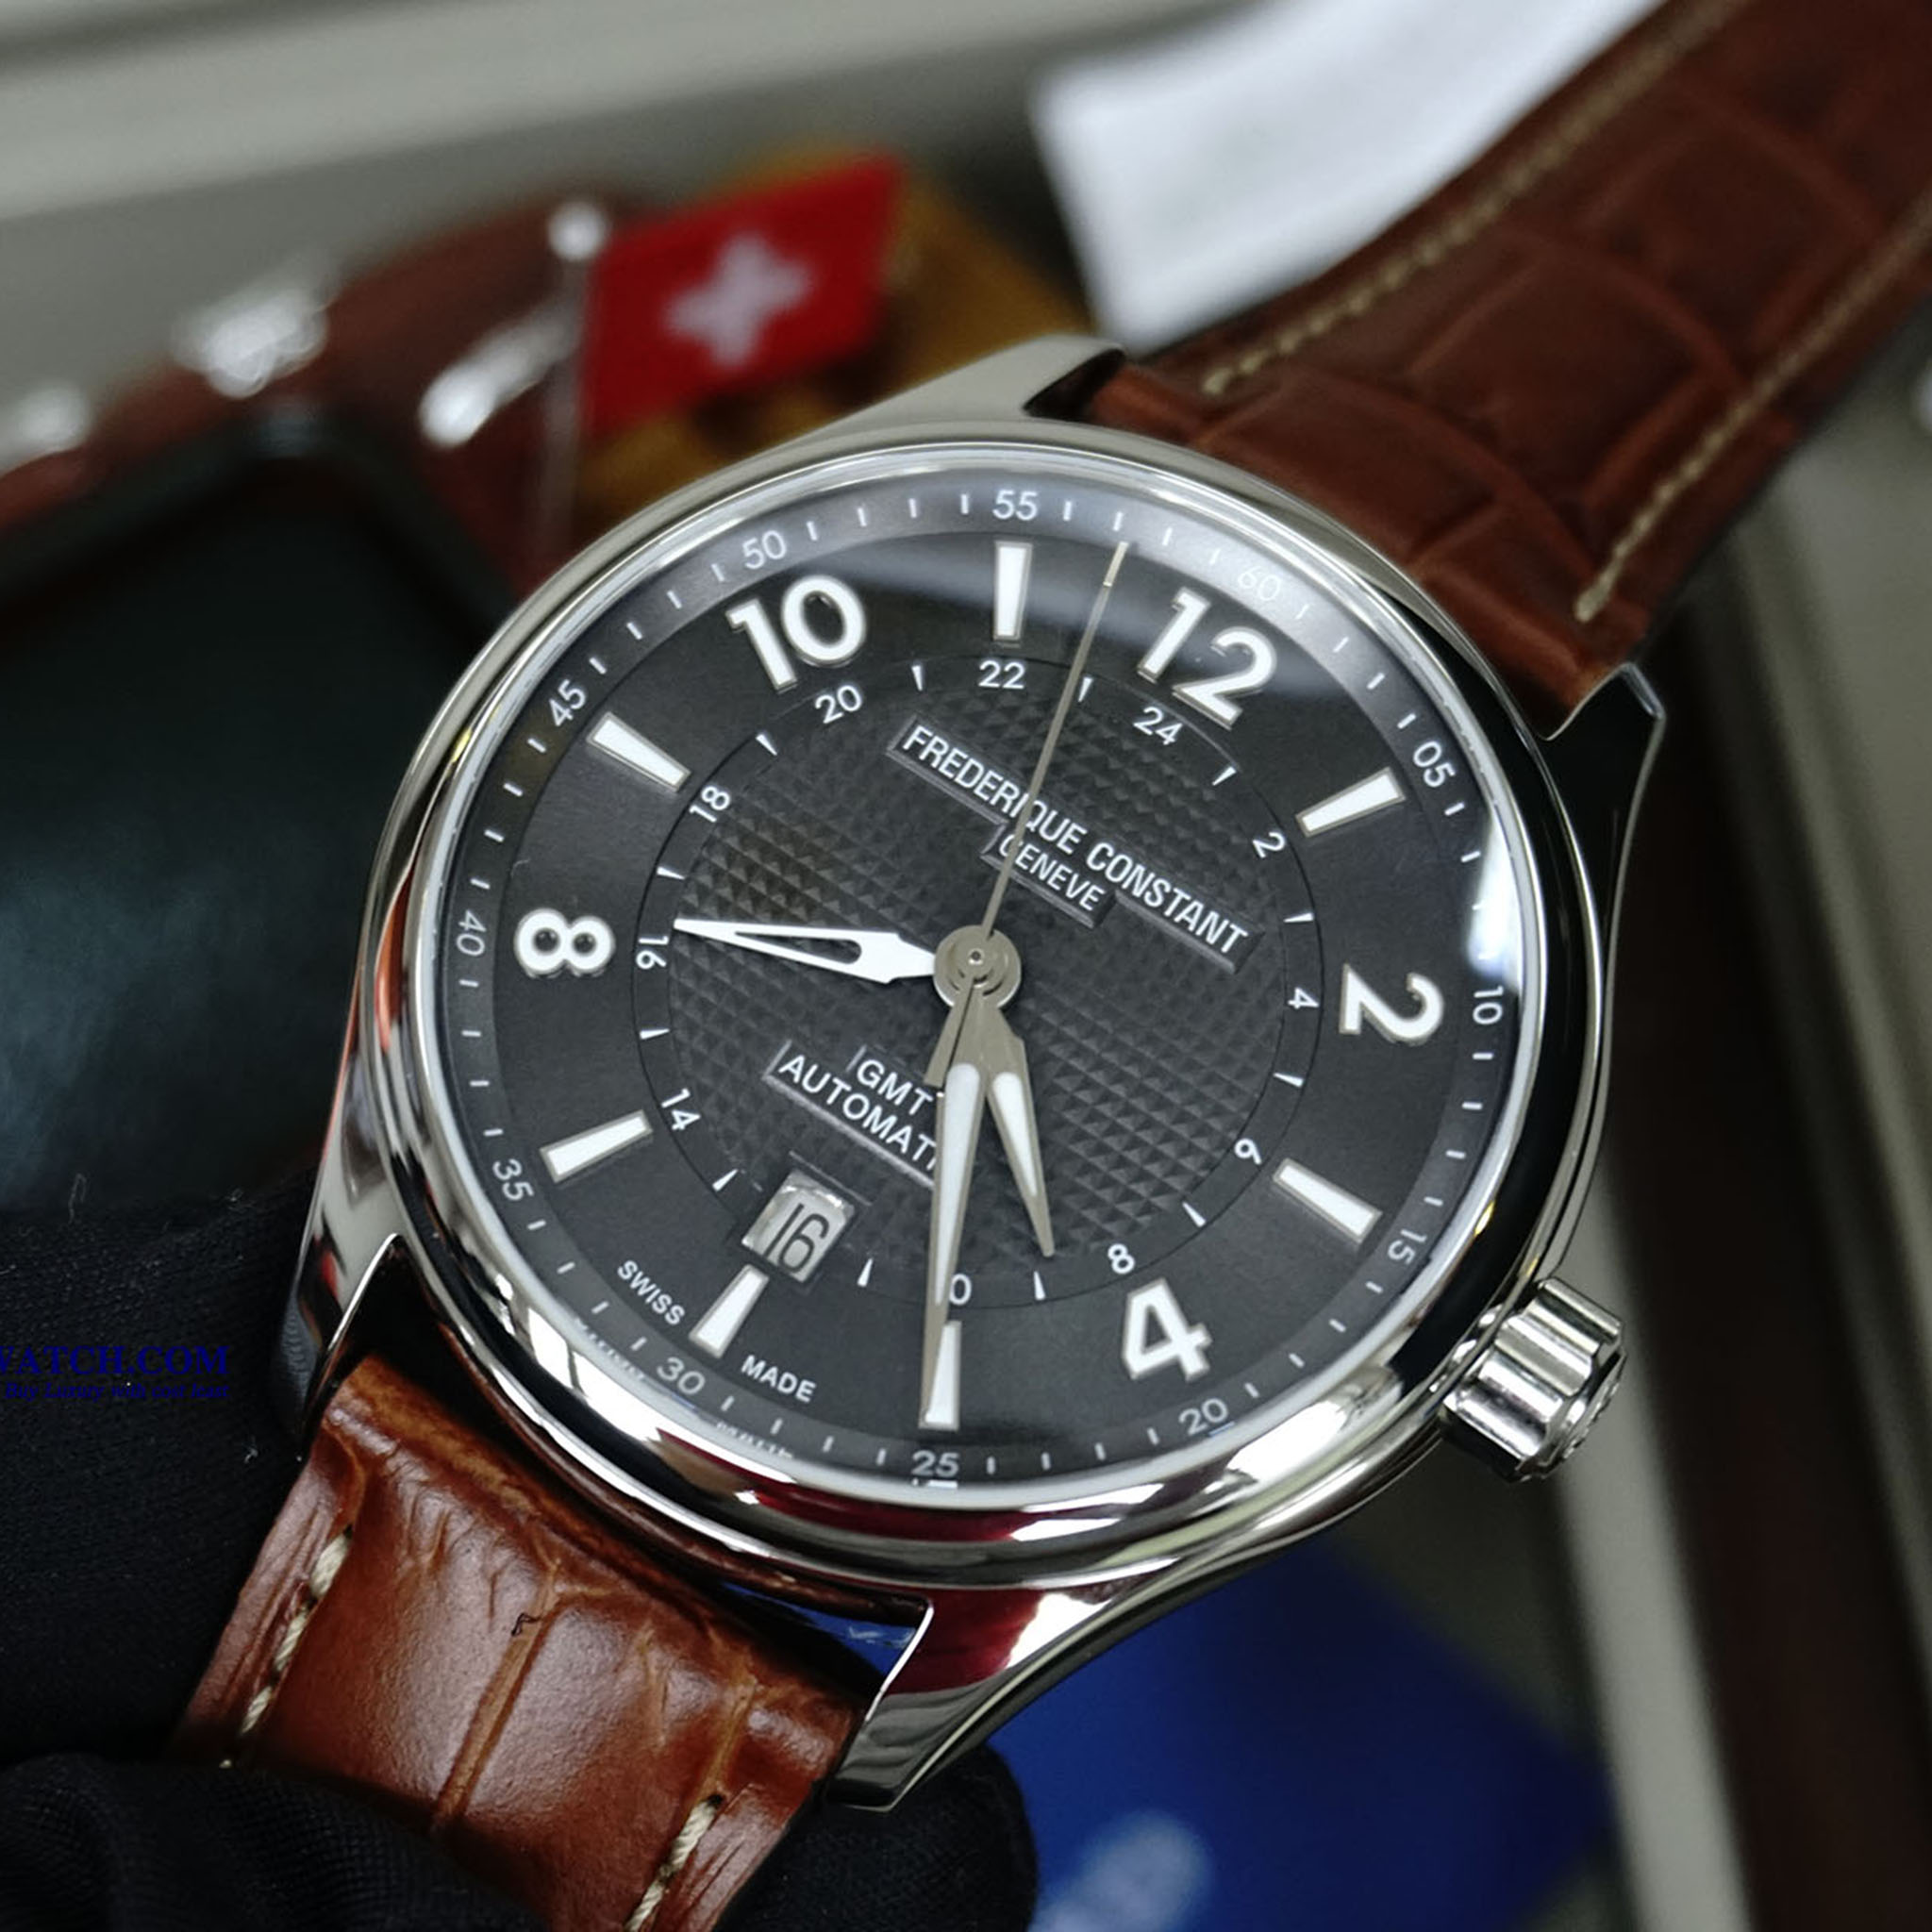 FREDERIQUE CONSTANT RUNABOUT GMT AUTOMATIC FC-350RMG5B6 Bản giới hạn Limited 2017 2888 chiếc - Thép không gỉ